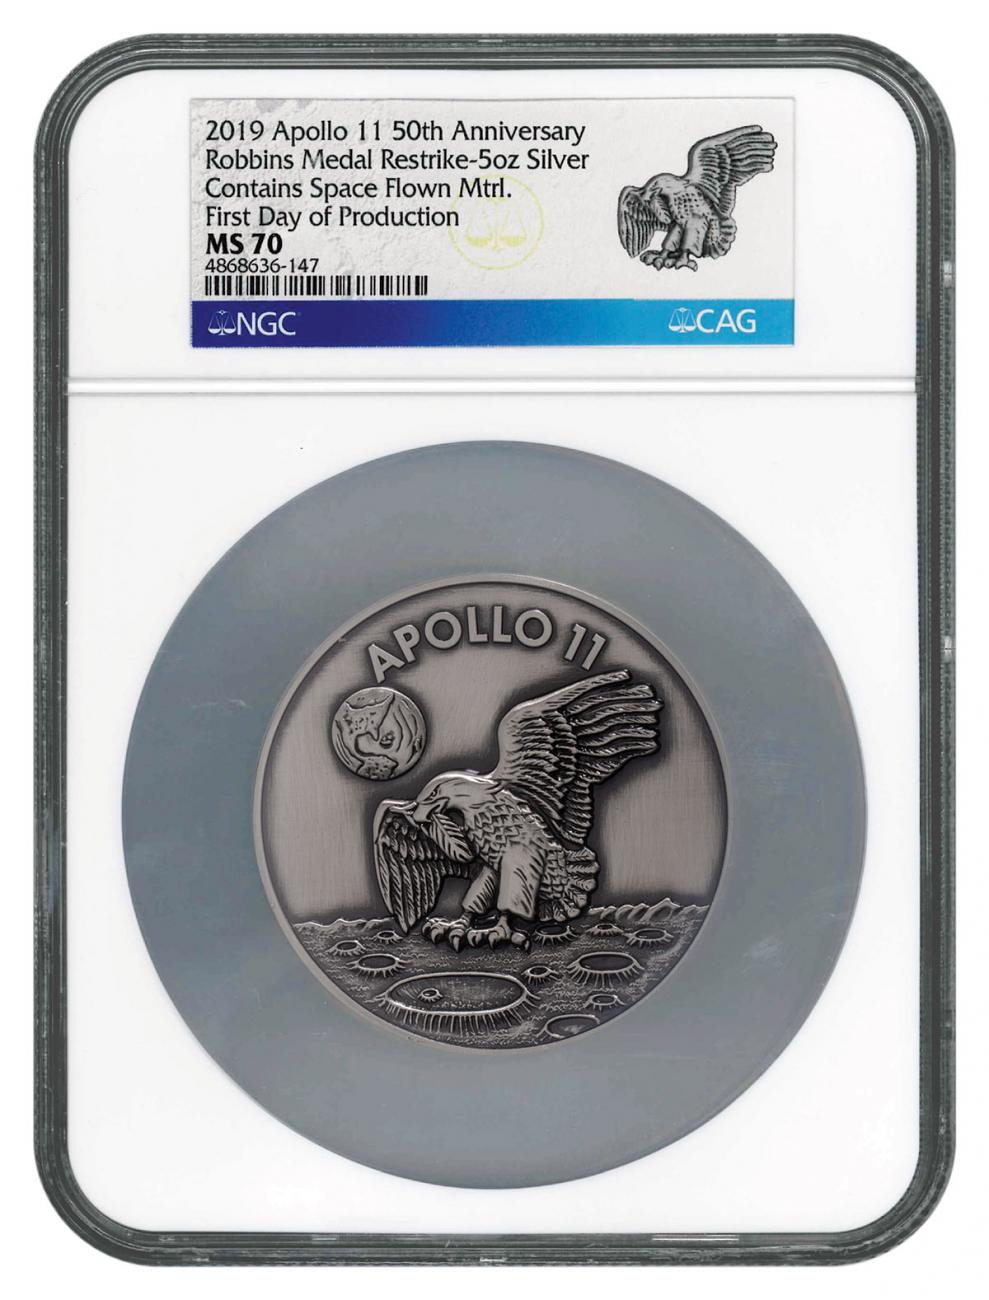 1969-2019 Apollo 11 50th Anniversary Robbins Medals 5 oz Silver with Space Flown Alloy Antiqued Medal Scarce and Unique Coin Division NGC MS70 First Day of Production